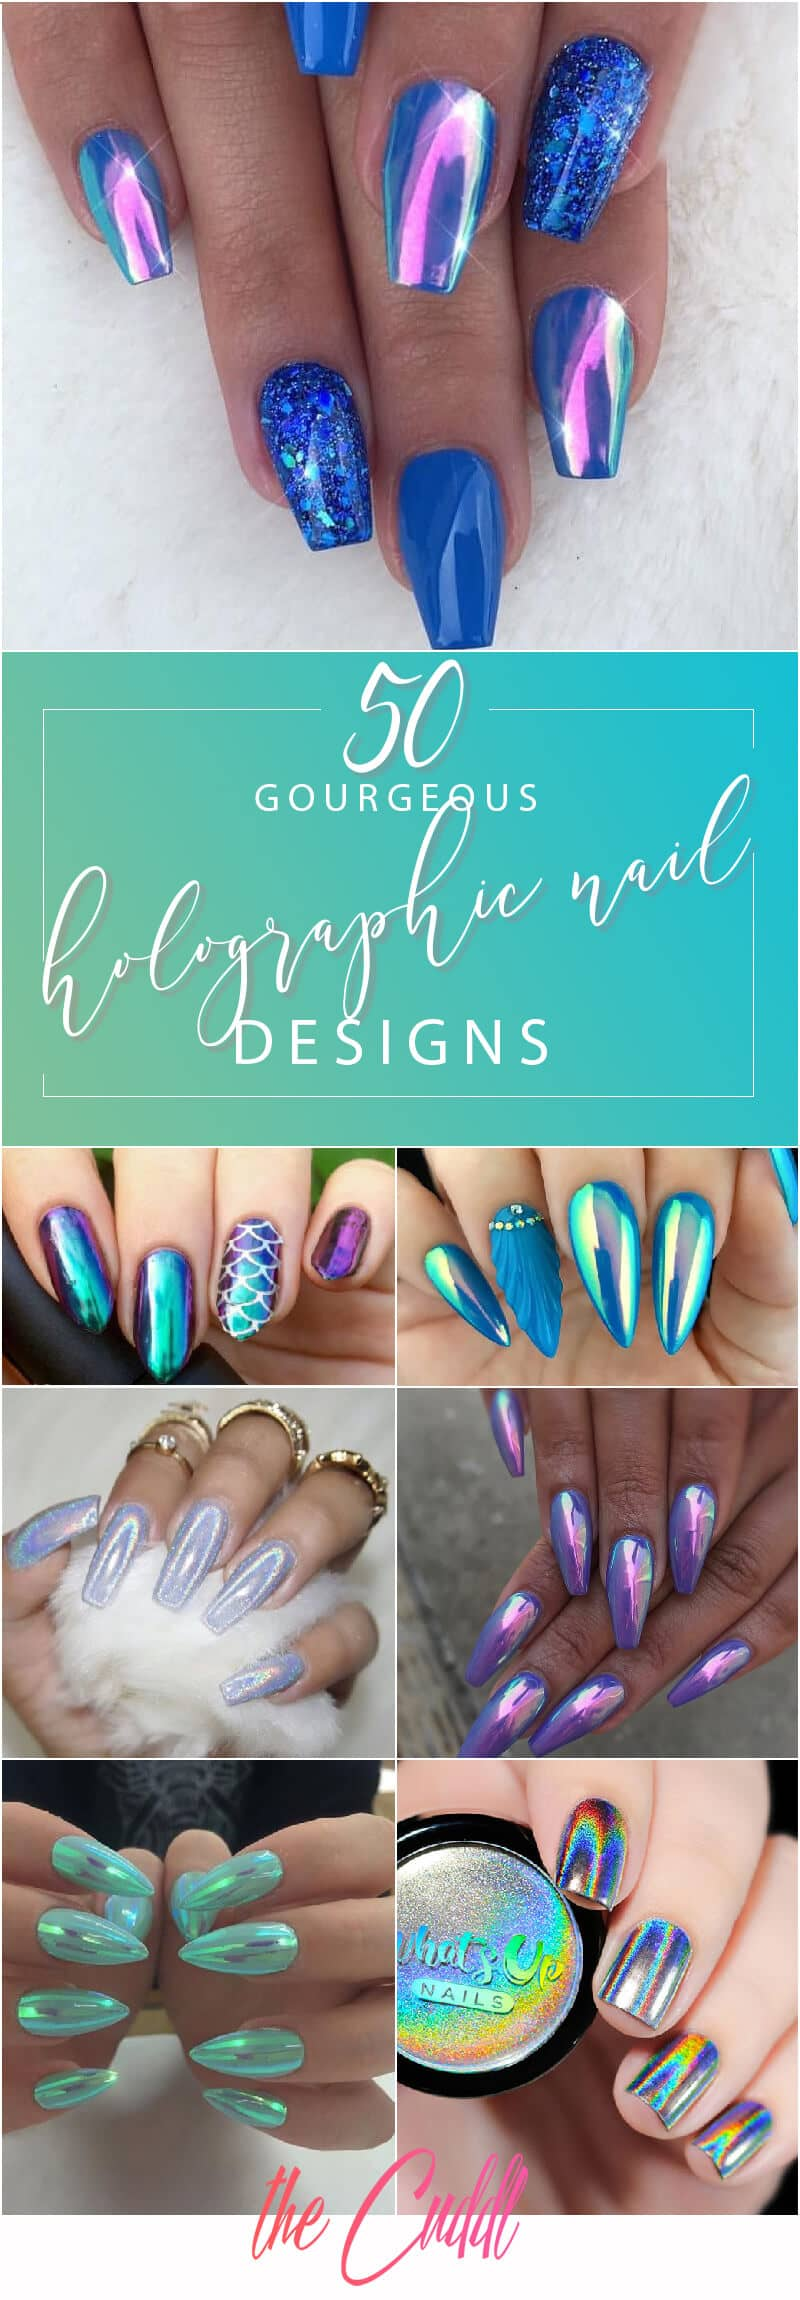 50 Gorgeous Holographic Nails That Are Simply Stunning